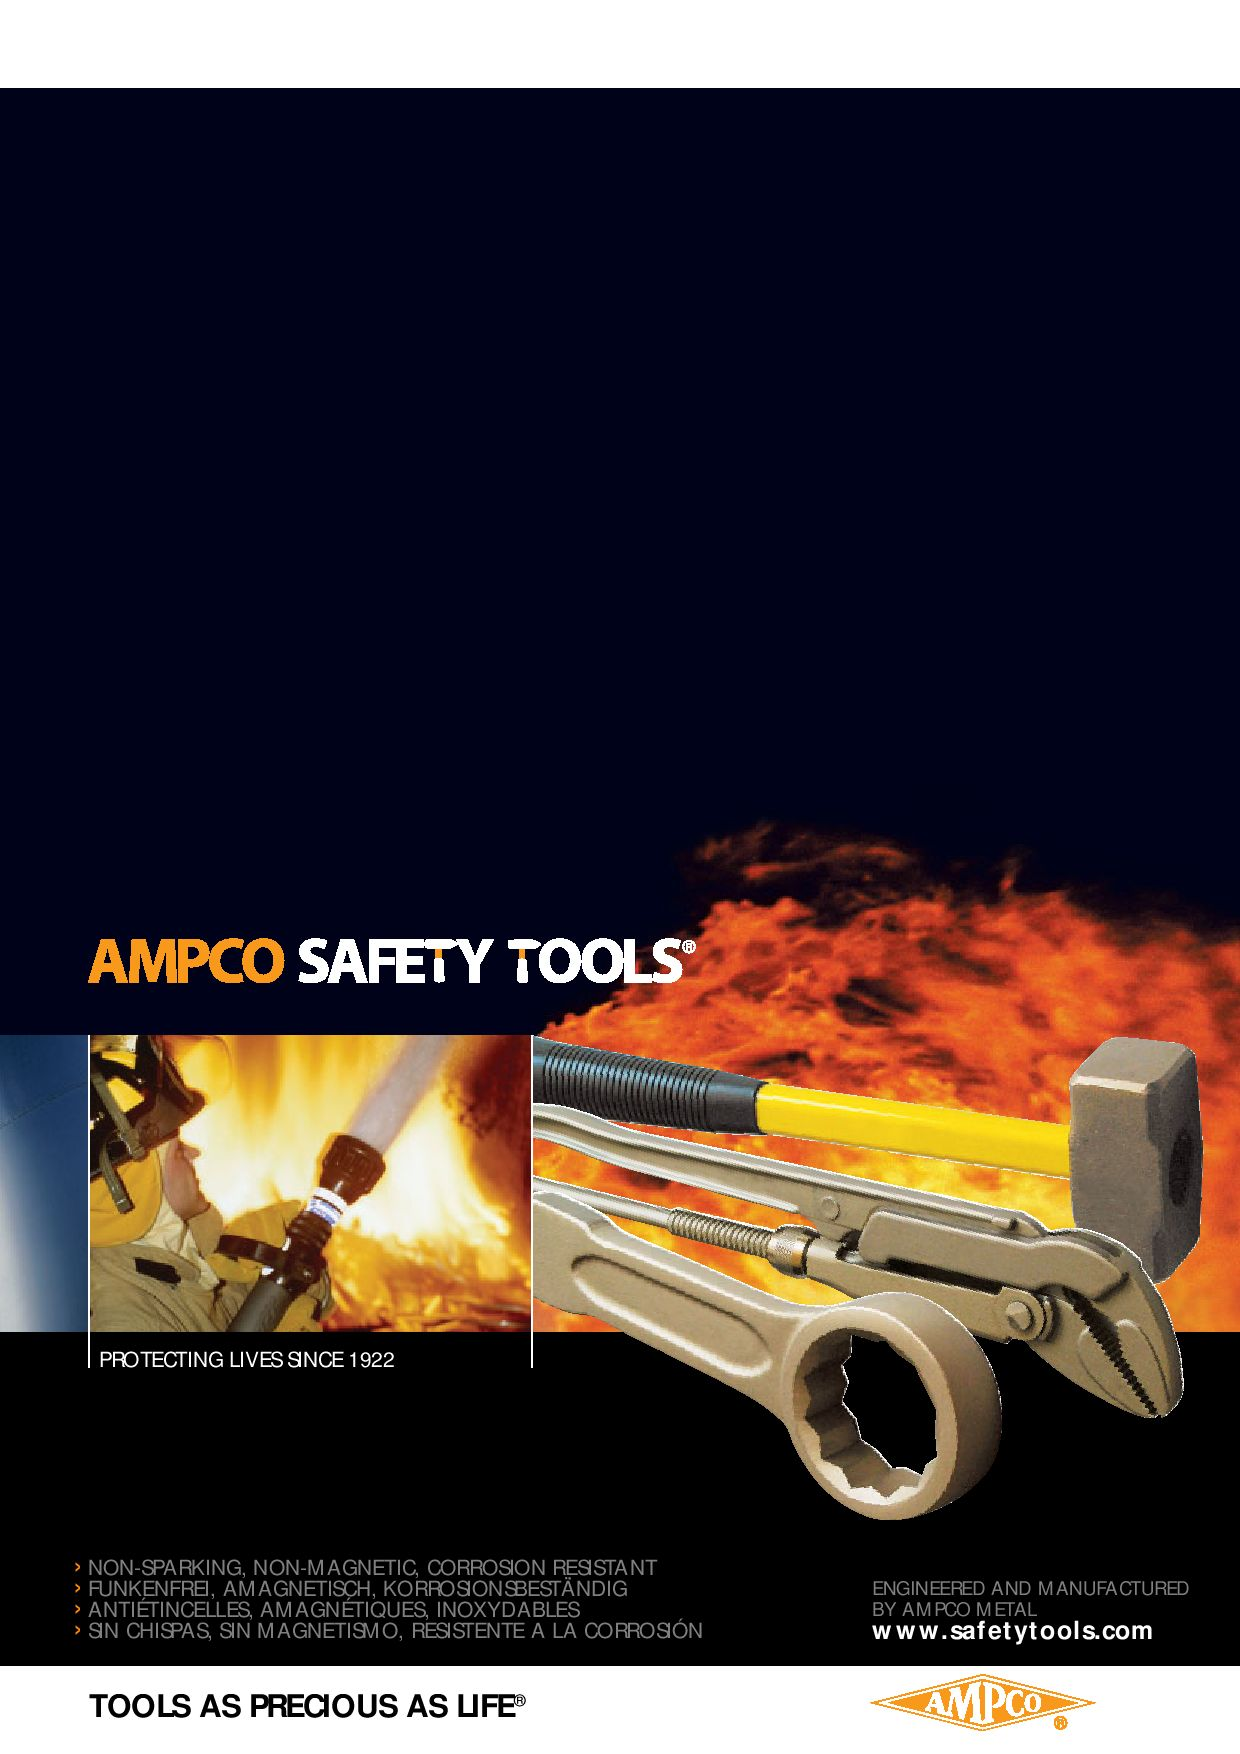 Ampco Safety Tools 1020 Wrench Non-Sparking Non-Magnetic 11 mm x 14 mm Double Box Corrosion Resistant